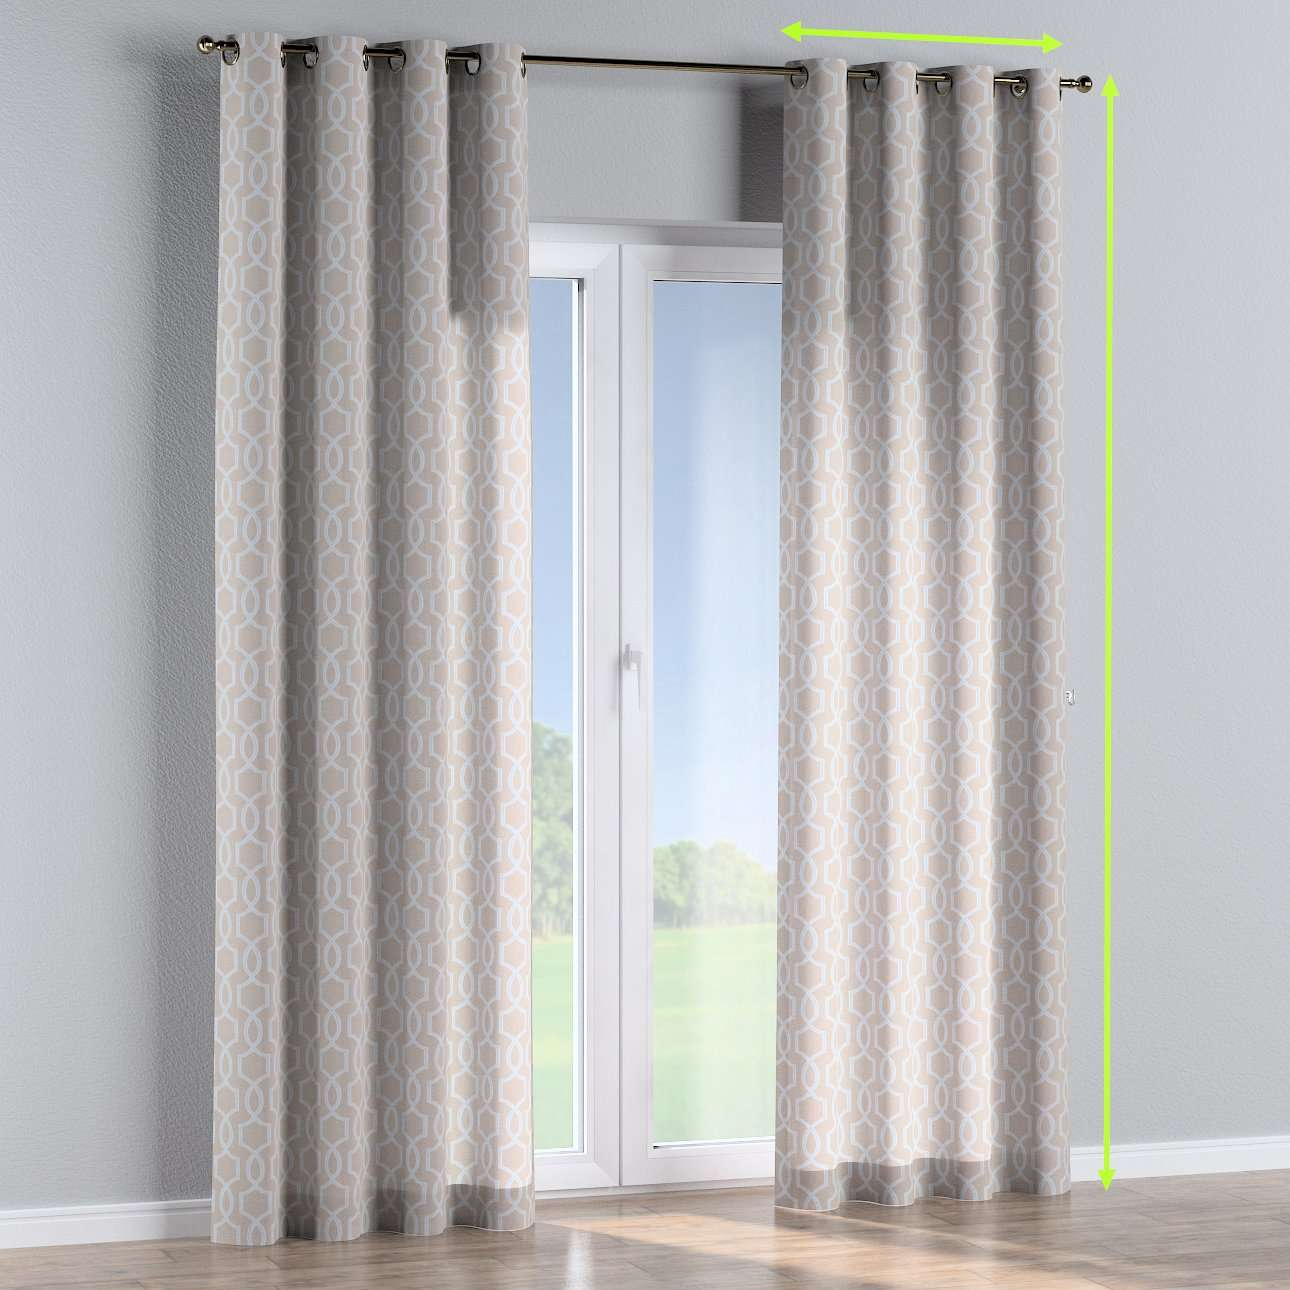 Eyelet lined curtains in collection Comic Book & Geo Prints, fabric: 141-26